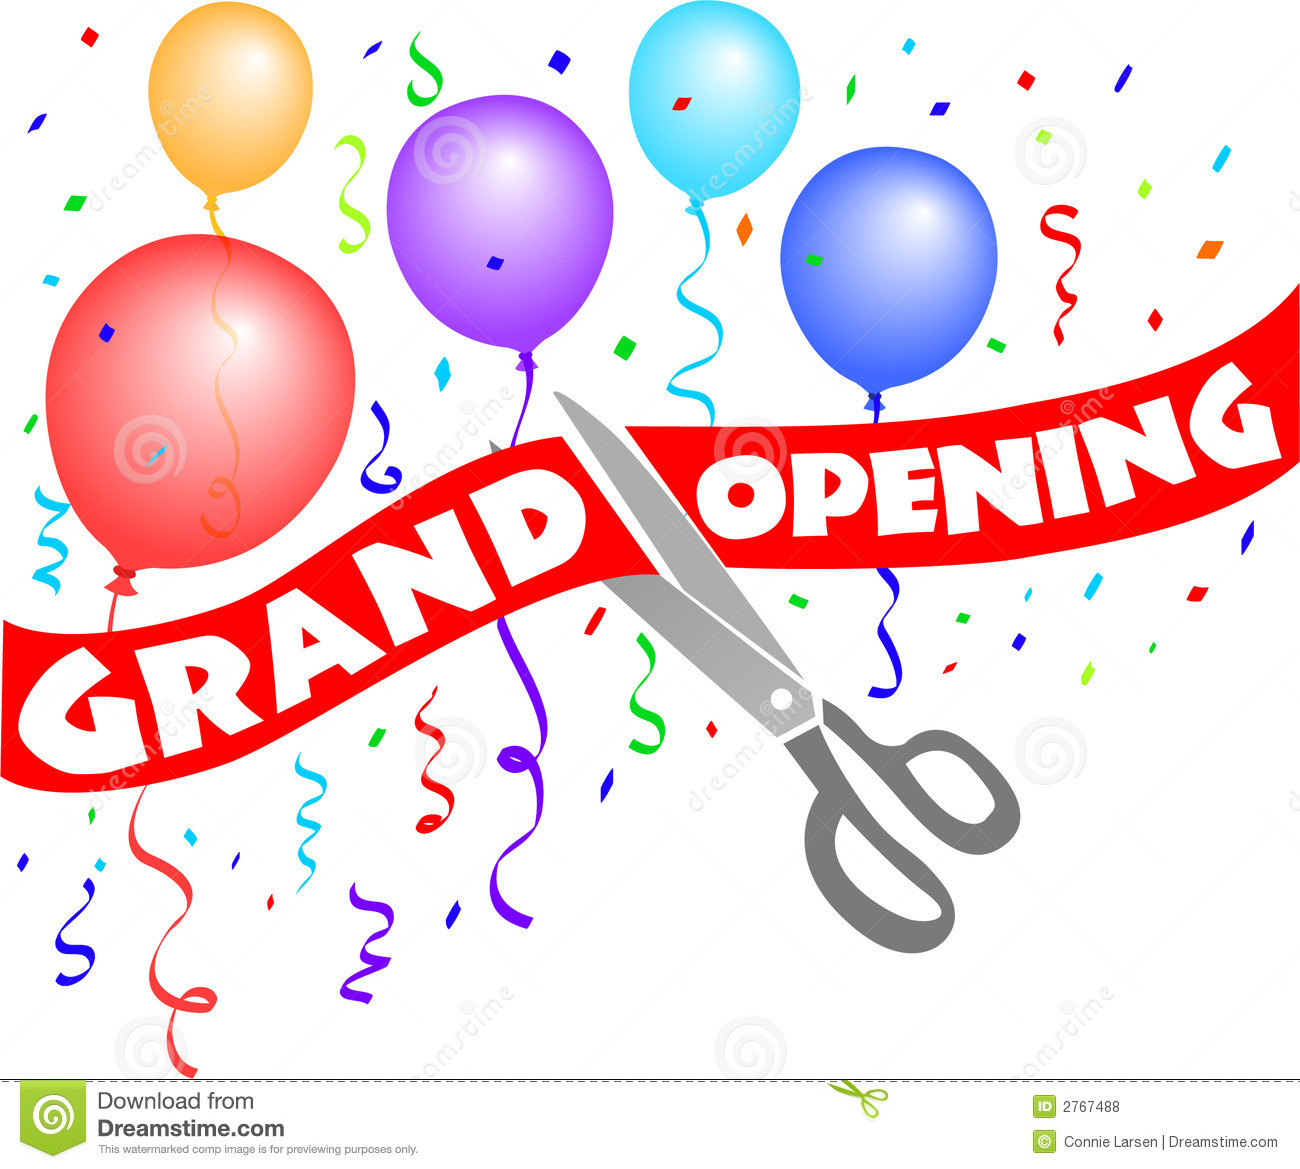 Free Clipart Of Ribbon Cutting Ceremony.